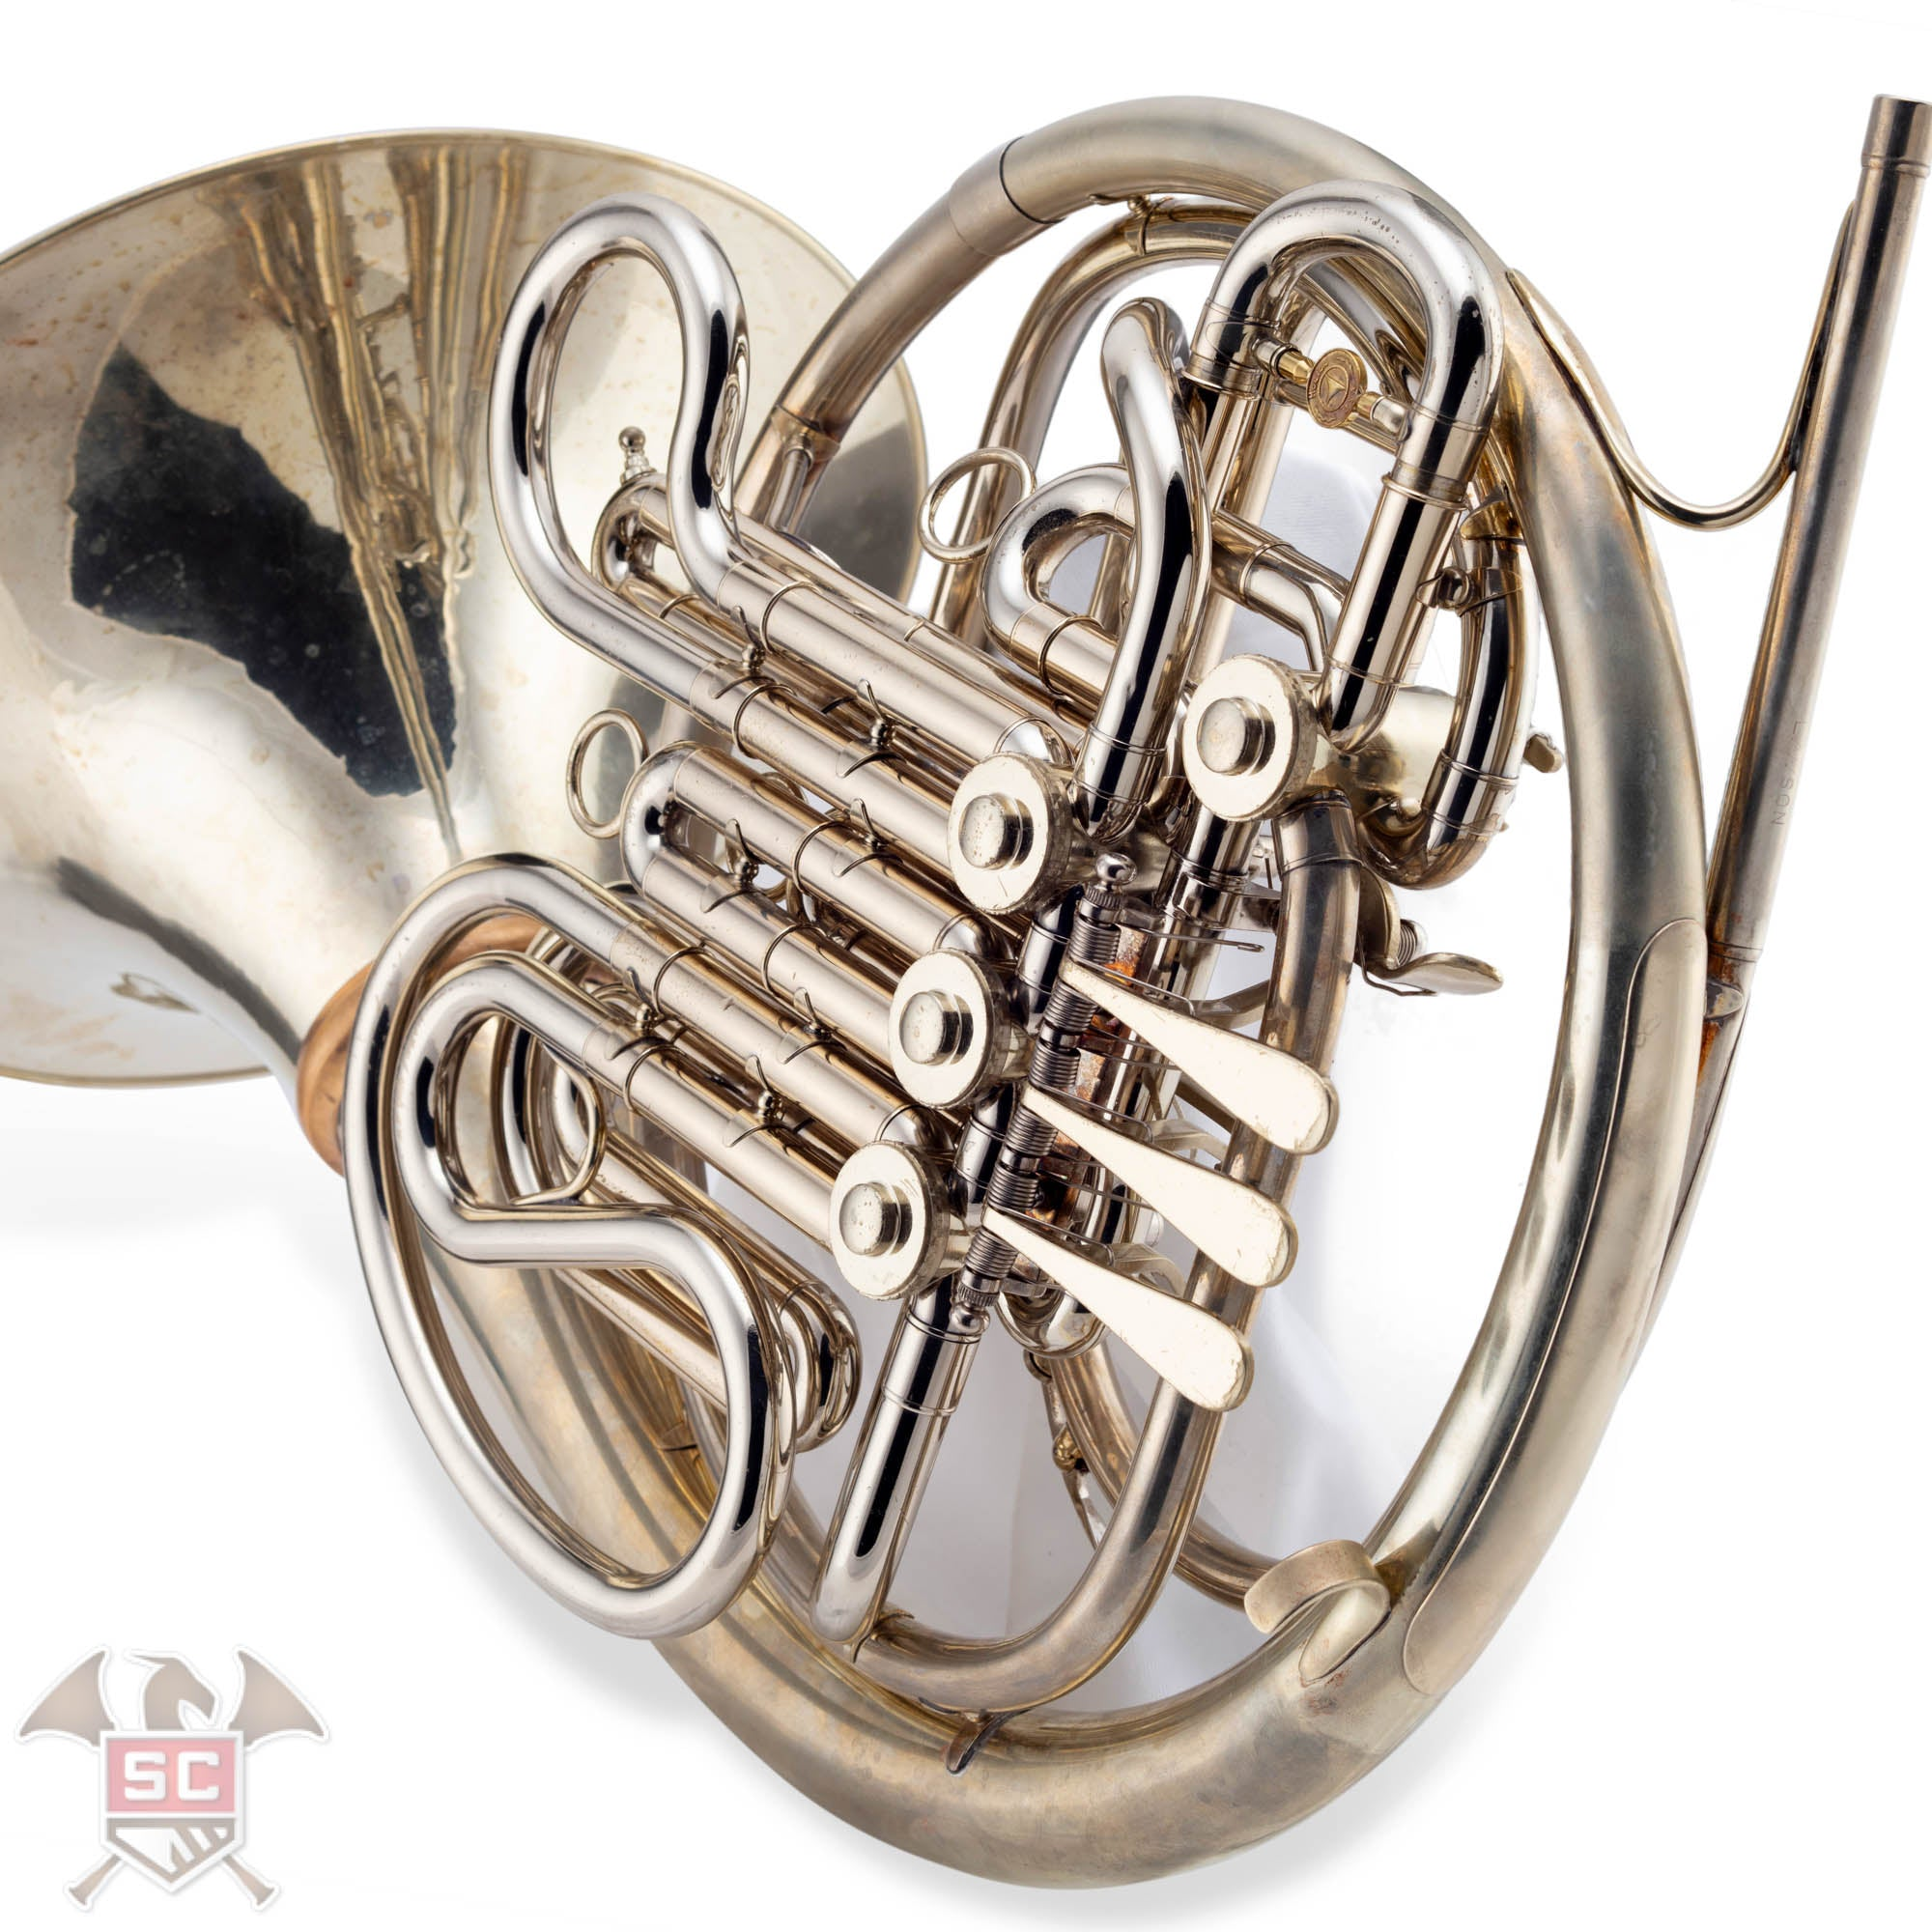 Used Holton/Lawson Hybrid double french horn - 665434